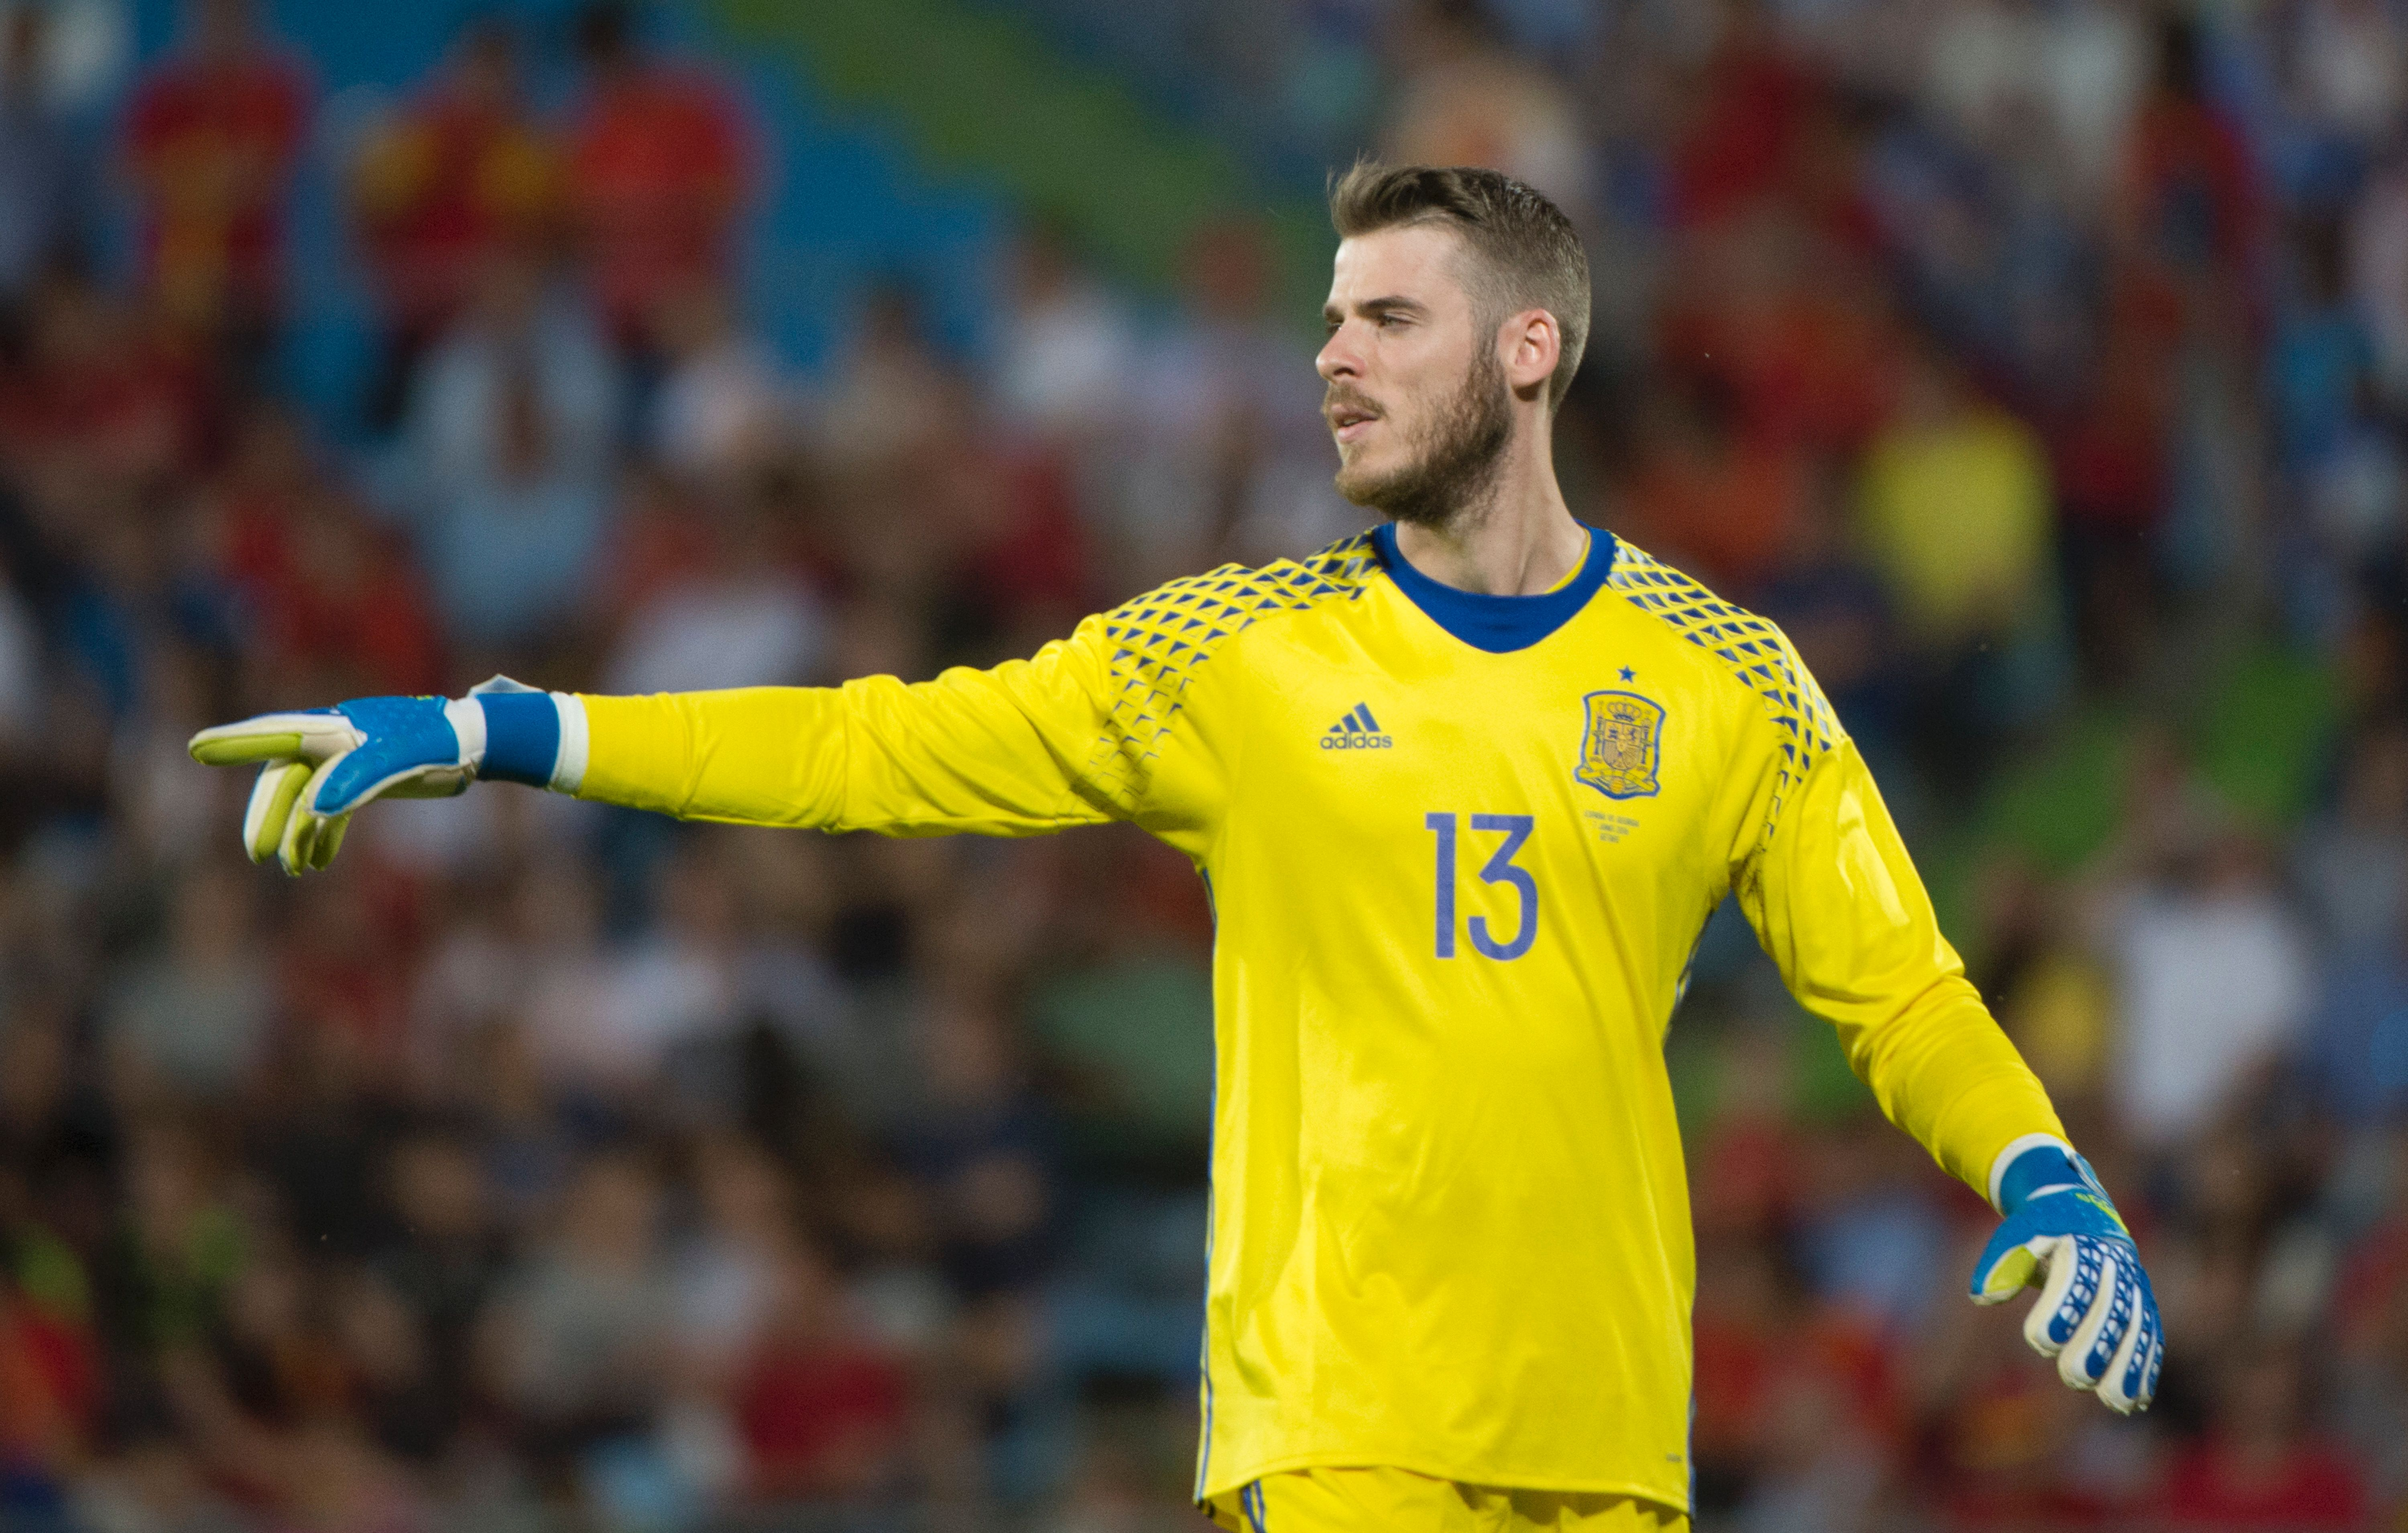 Will David de Gea's future be at Manchester United or Real Madrid?